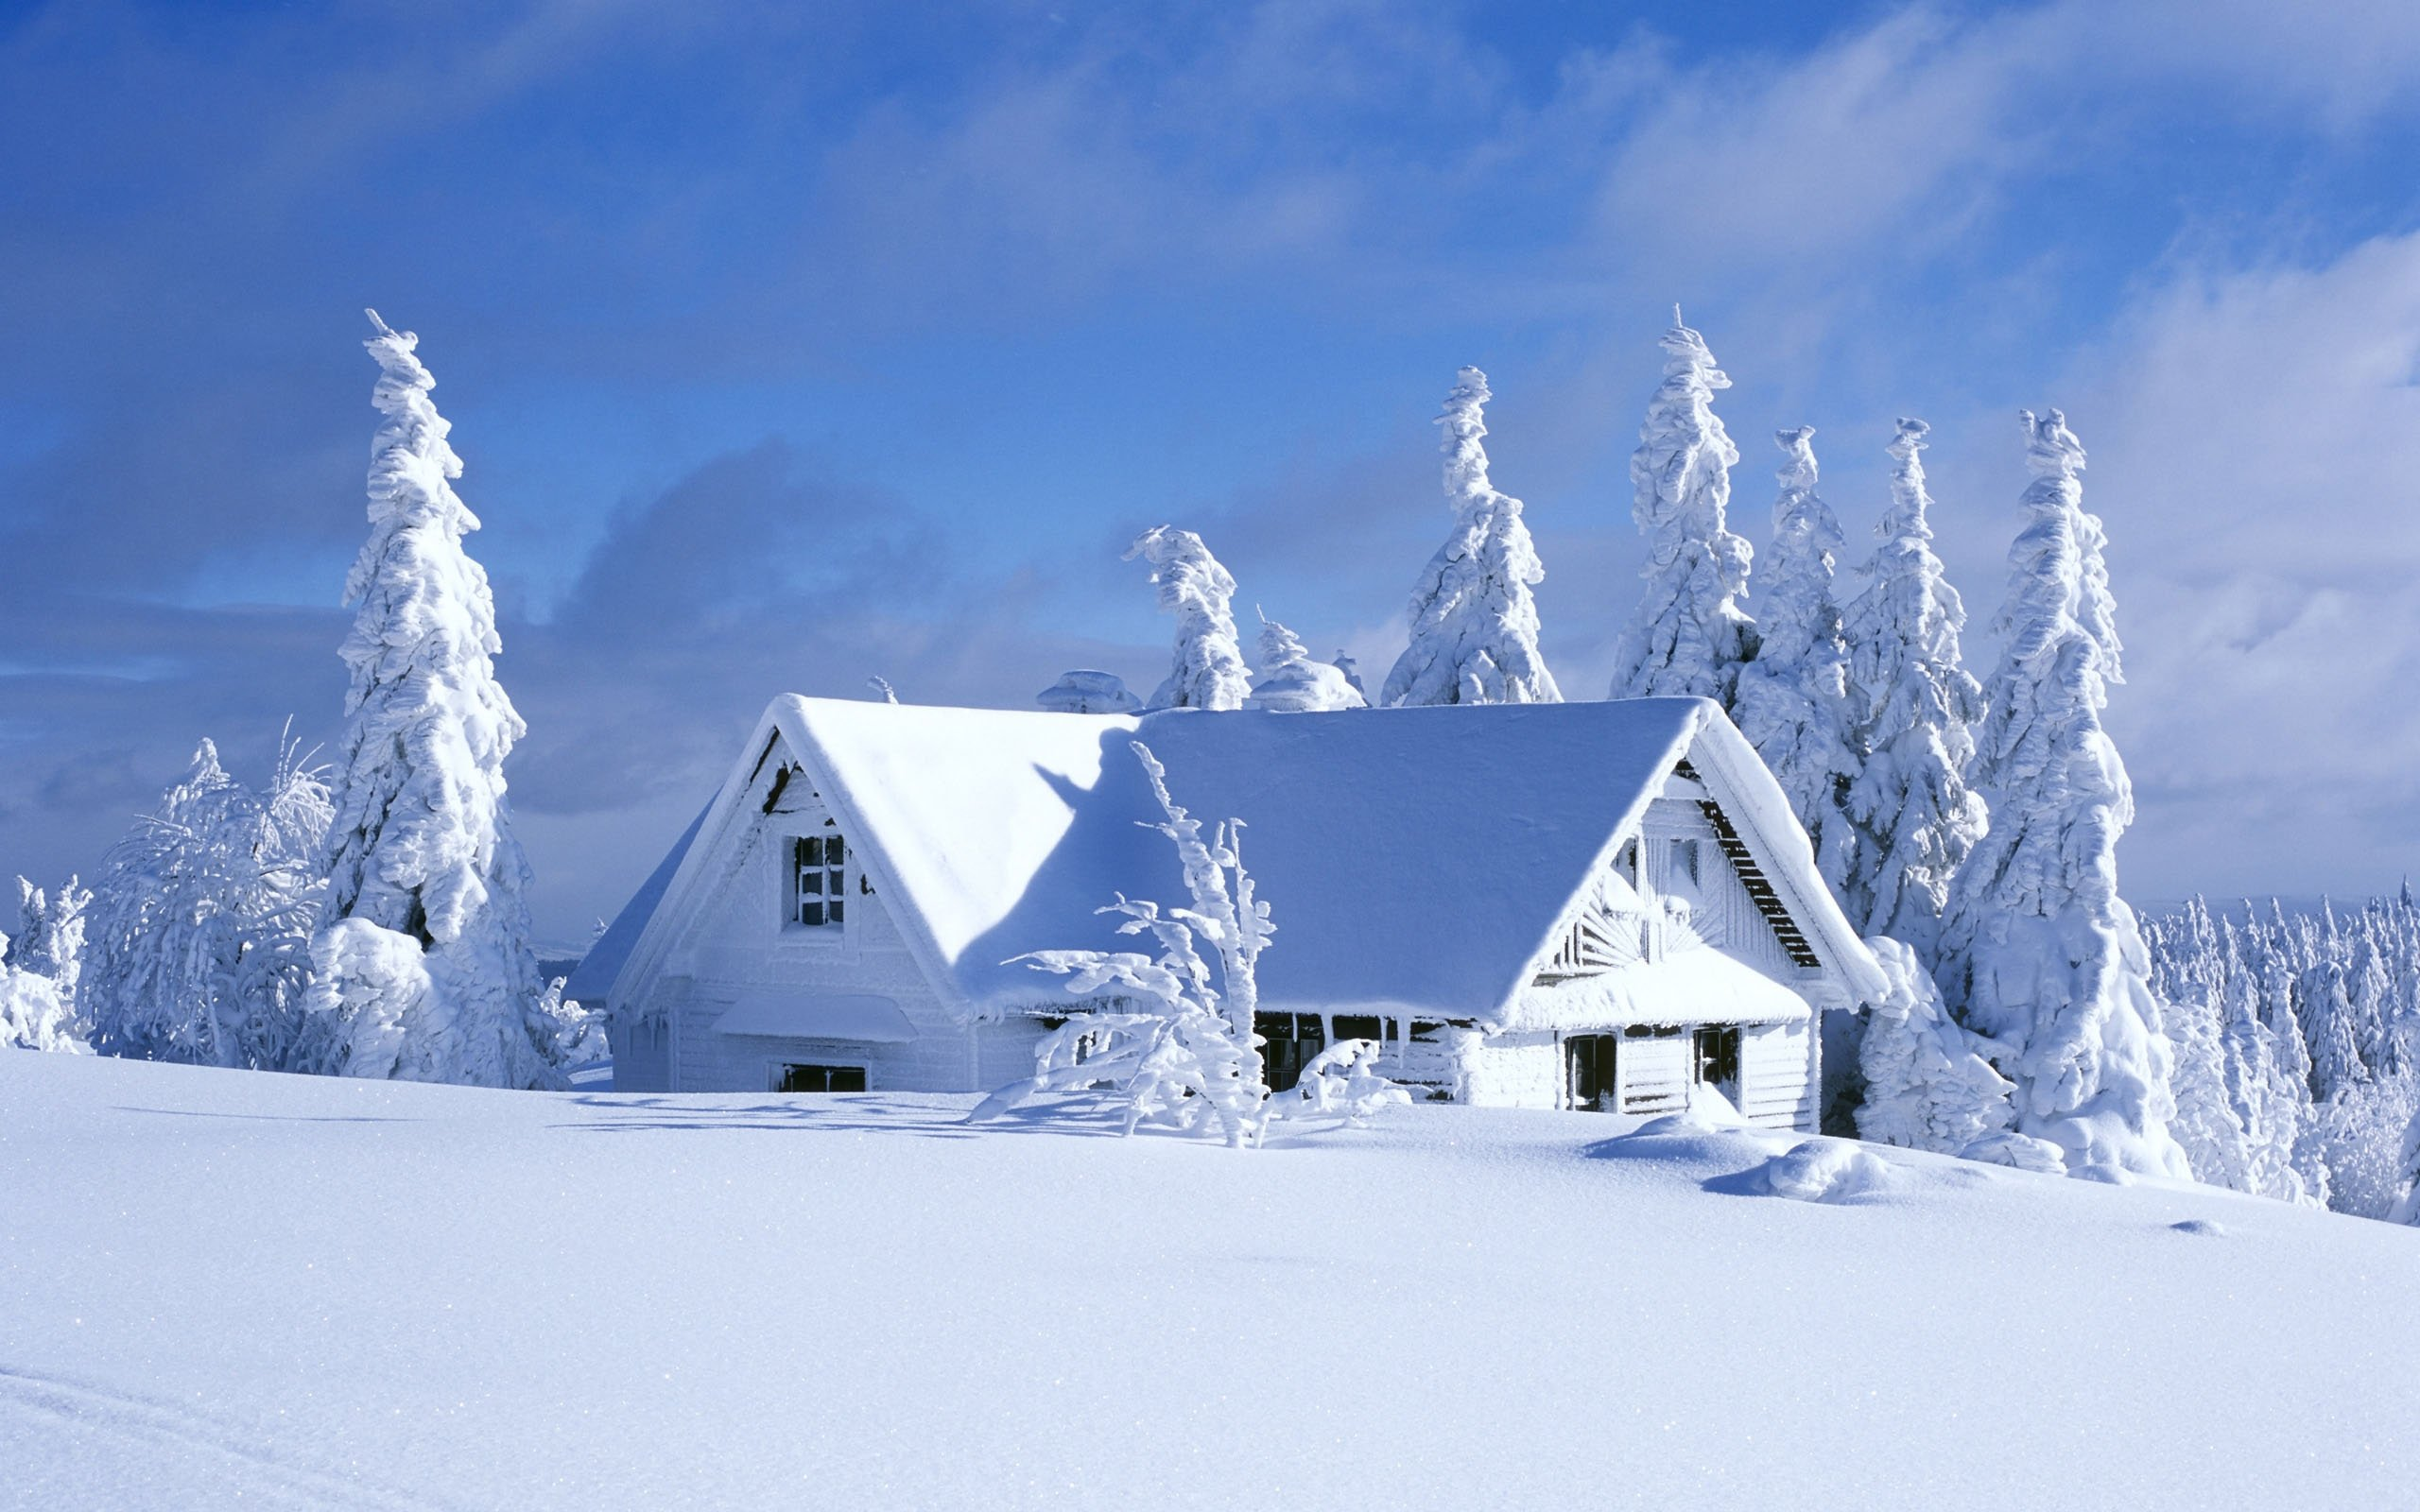 winter wallpaper for pc 2015   Grasscloth Wallpaper 2560x1600